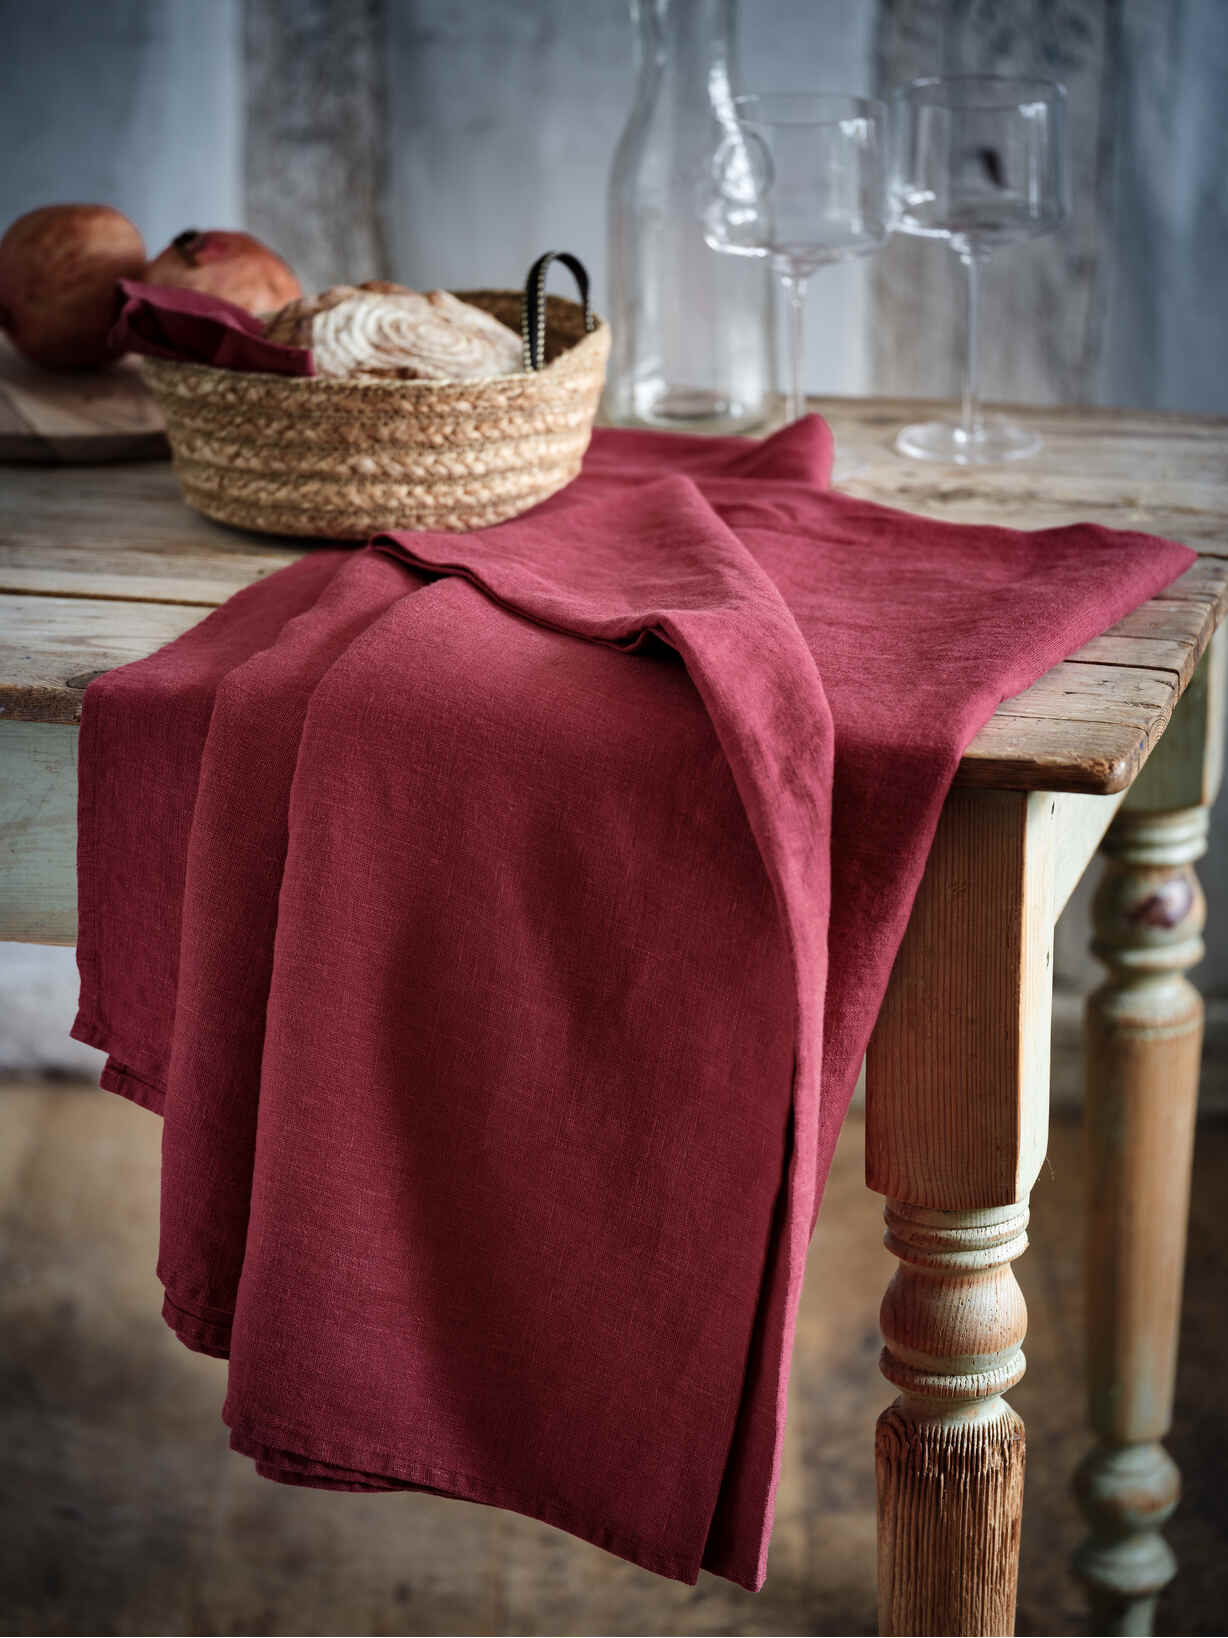 Nordic House Mulberry Linen Tablecloths